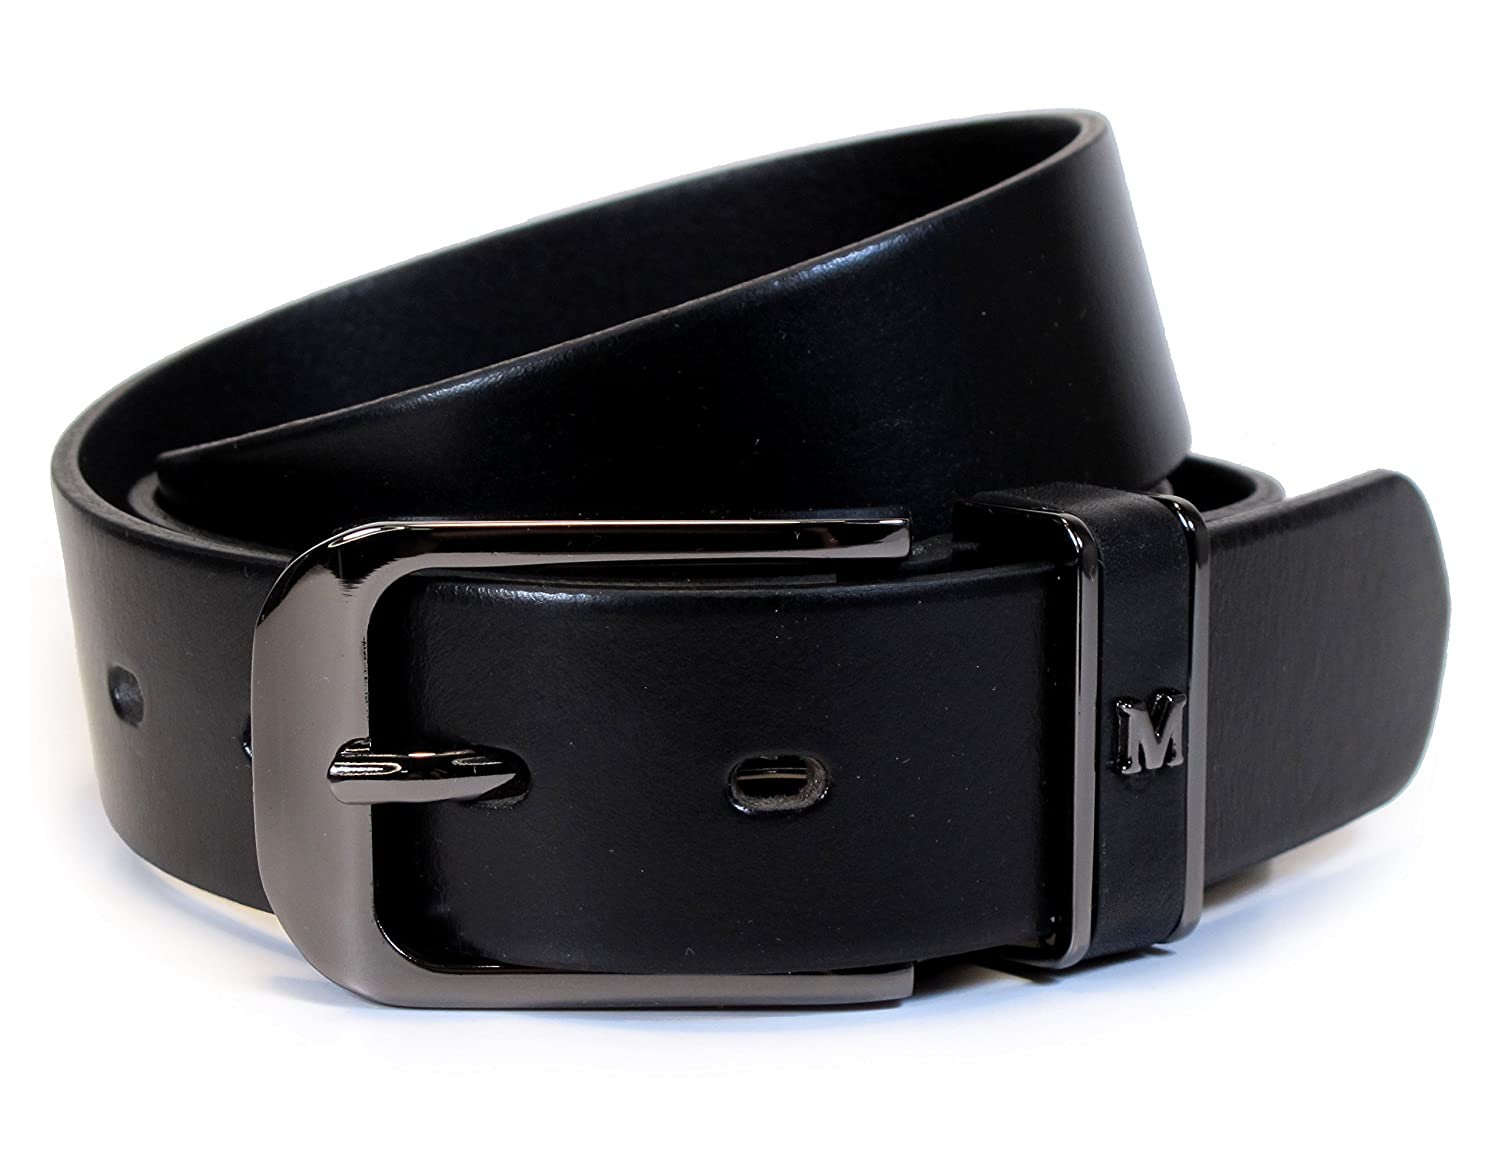 Mens Real Genuine Leather Belt Black Brown White 1.25 Wide S-L Casual Jeans TM7